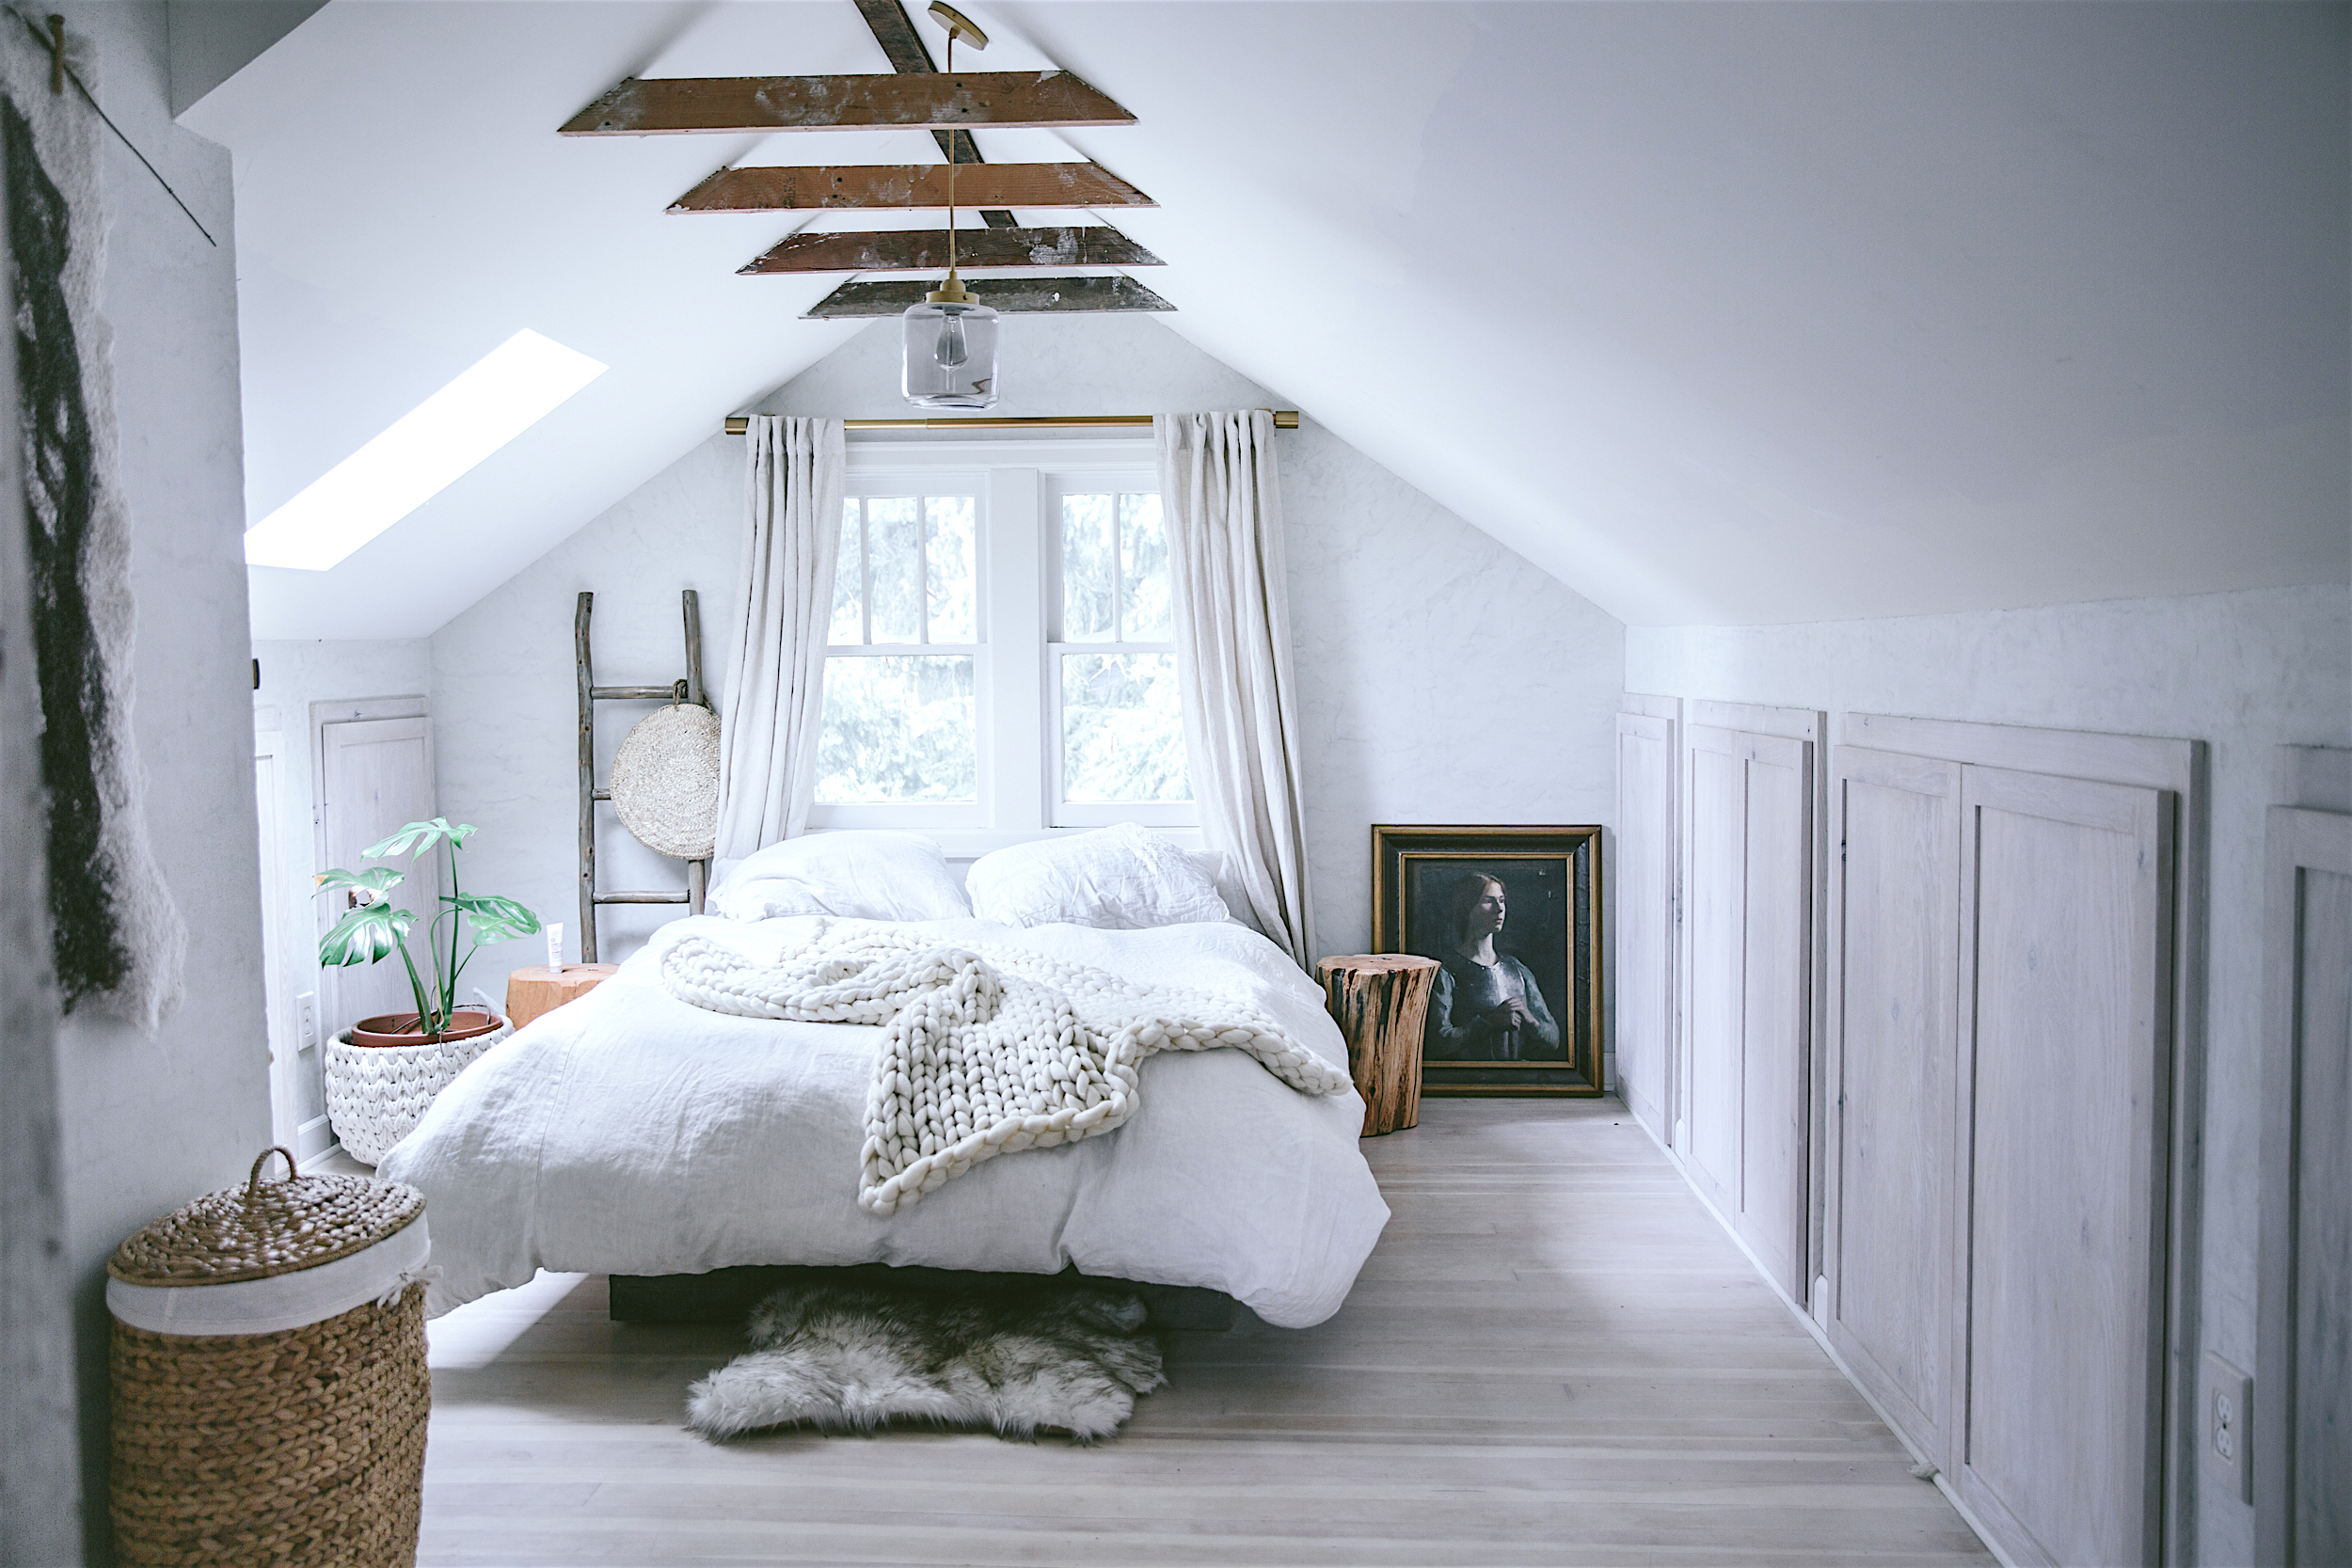 74a68719e0e 8 Cozy Bedroom Attic Lofts